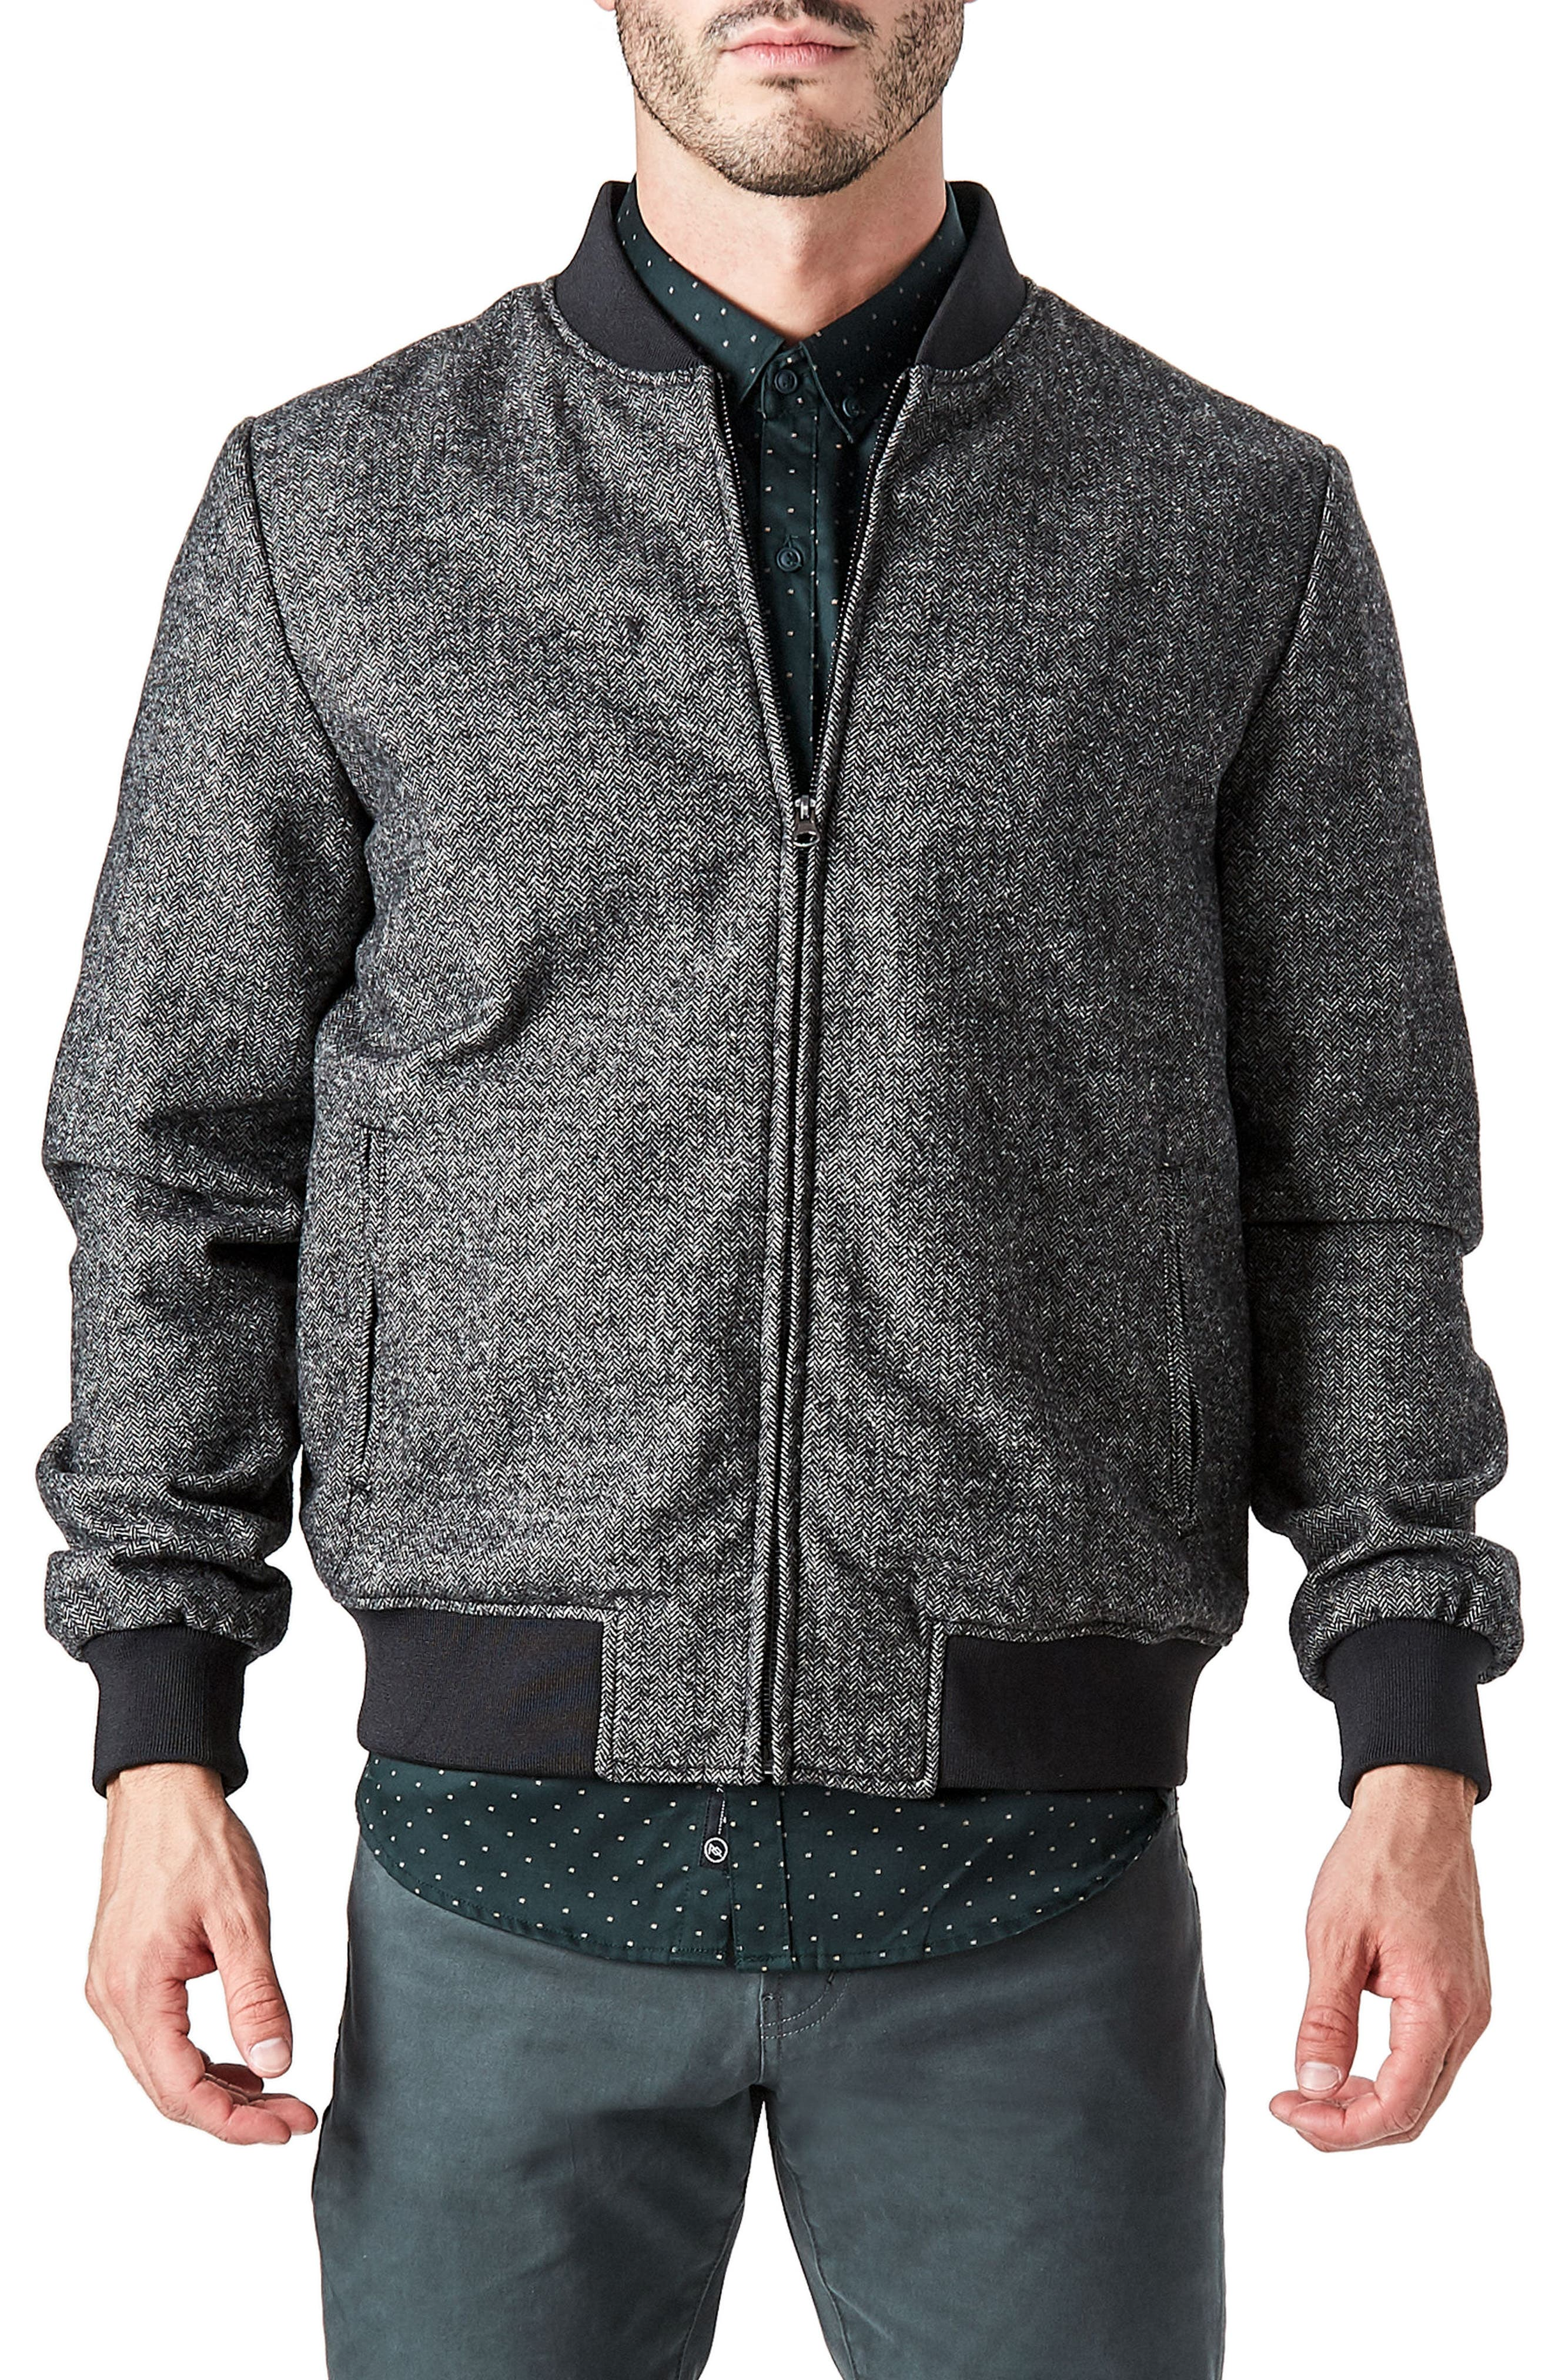 Aether Bomber Jacket,                             Main thumbnail 1, color,